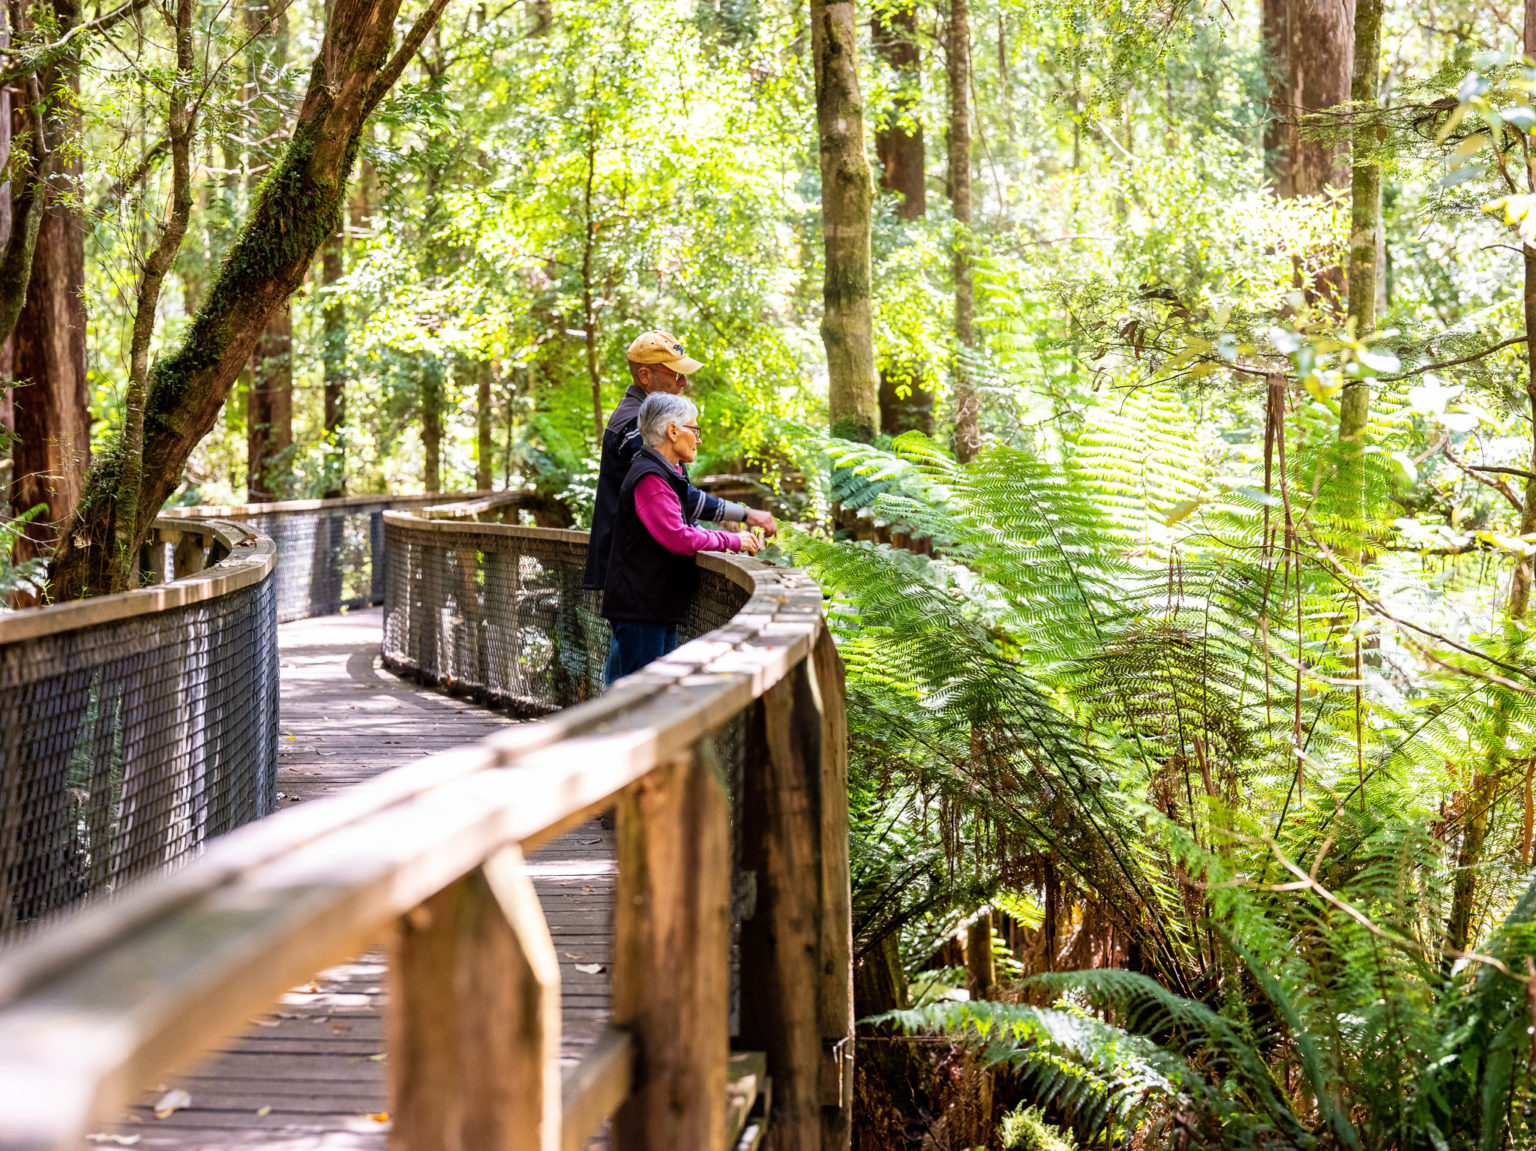 Huon Valley's Caves, Walks and Forests - The Huon Valley ...